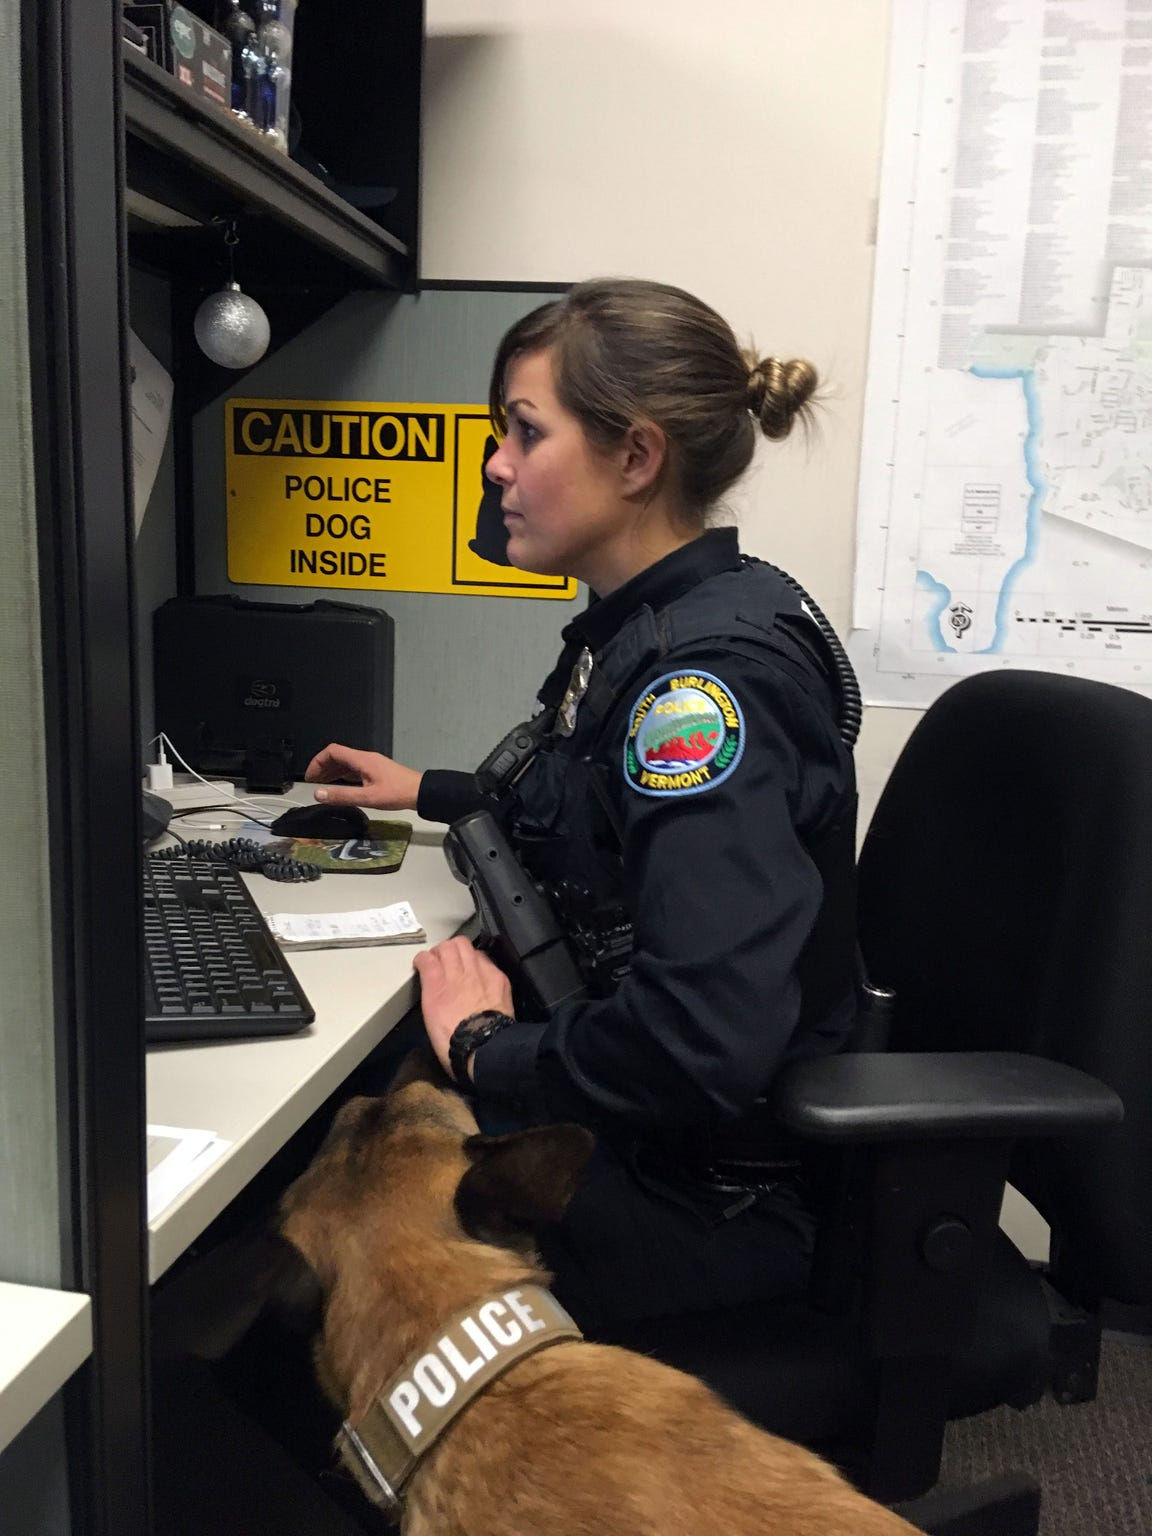 South Burlington Police Officer Sarah Bellavance attempts to complete paperwork on her computer while K9 Rush tries to goad her into playing on Dec. 6, 2018.